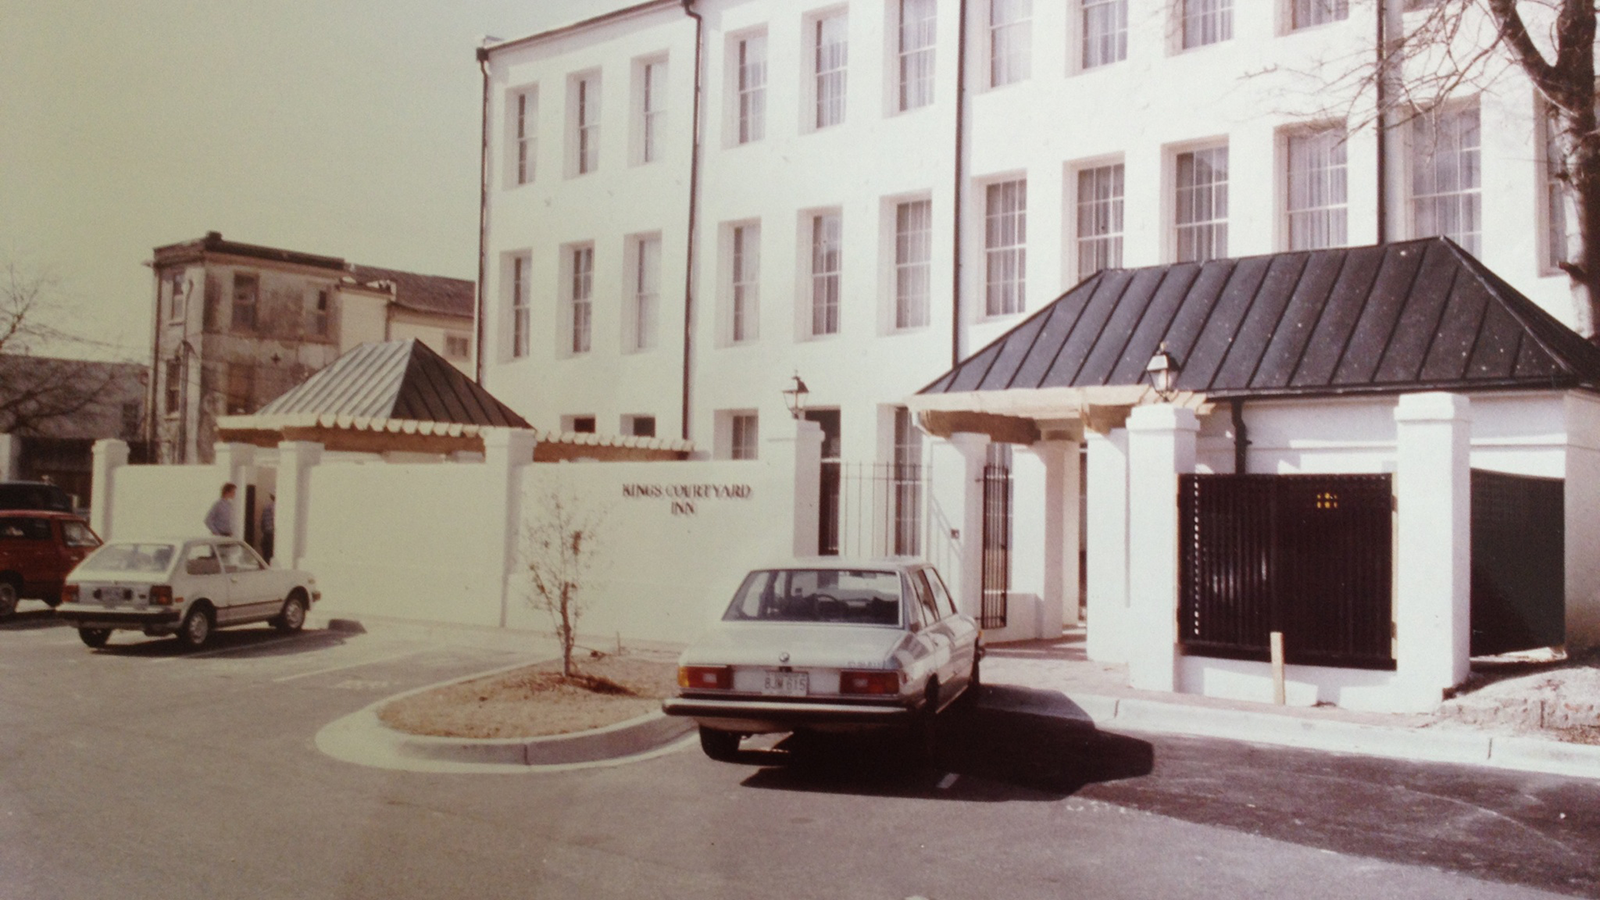 Image of Historic Exterior, Kings Courtyard Inn in Charleston, South Carolina, 1853, Member of Historic Hotels of America, Discover